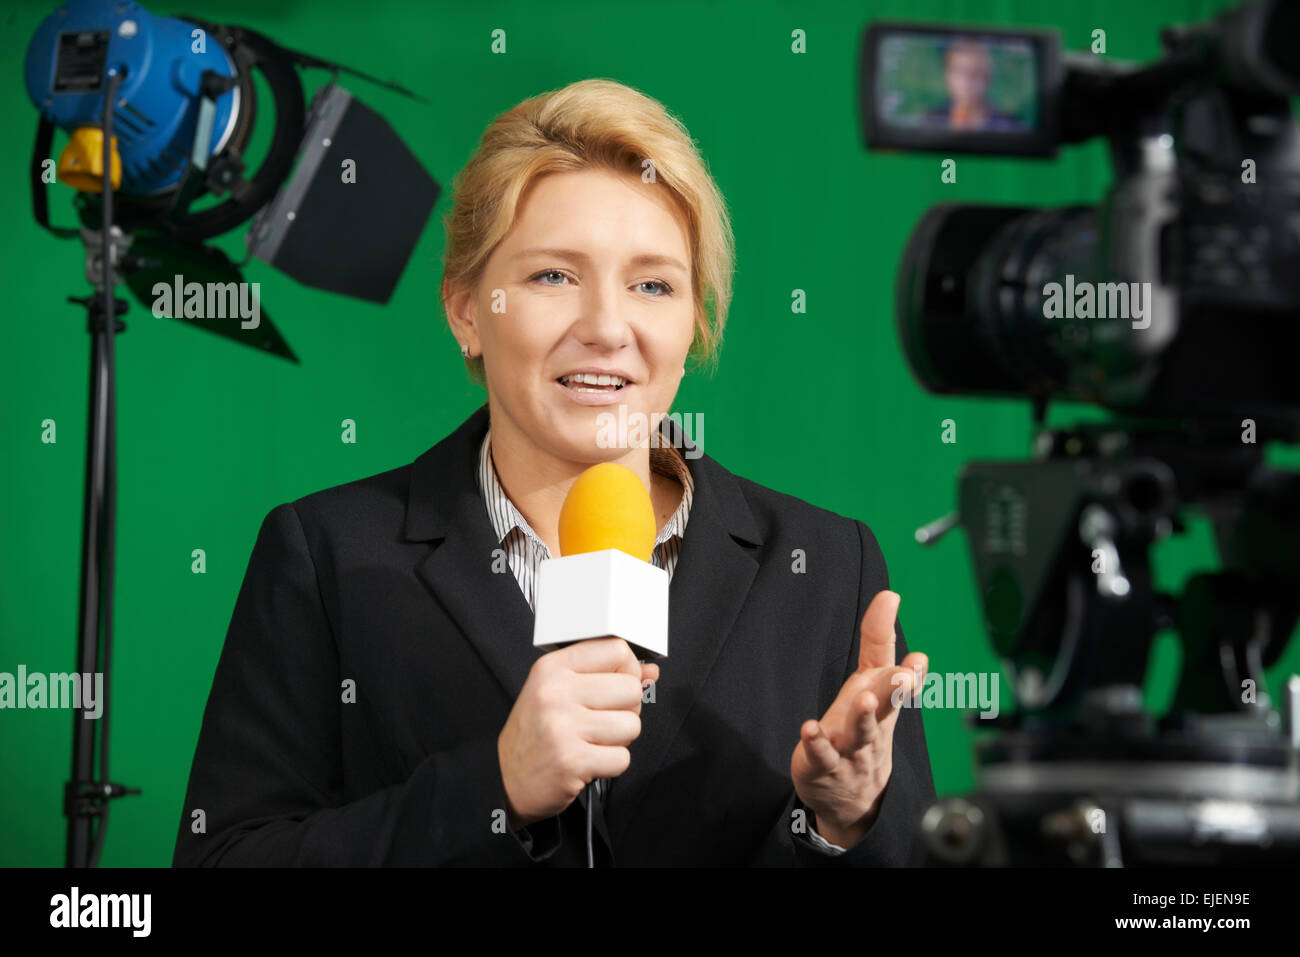 Female Journalist Presenting Report In Television Studio - Stock Image